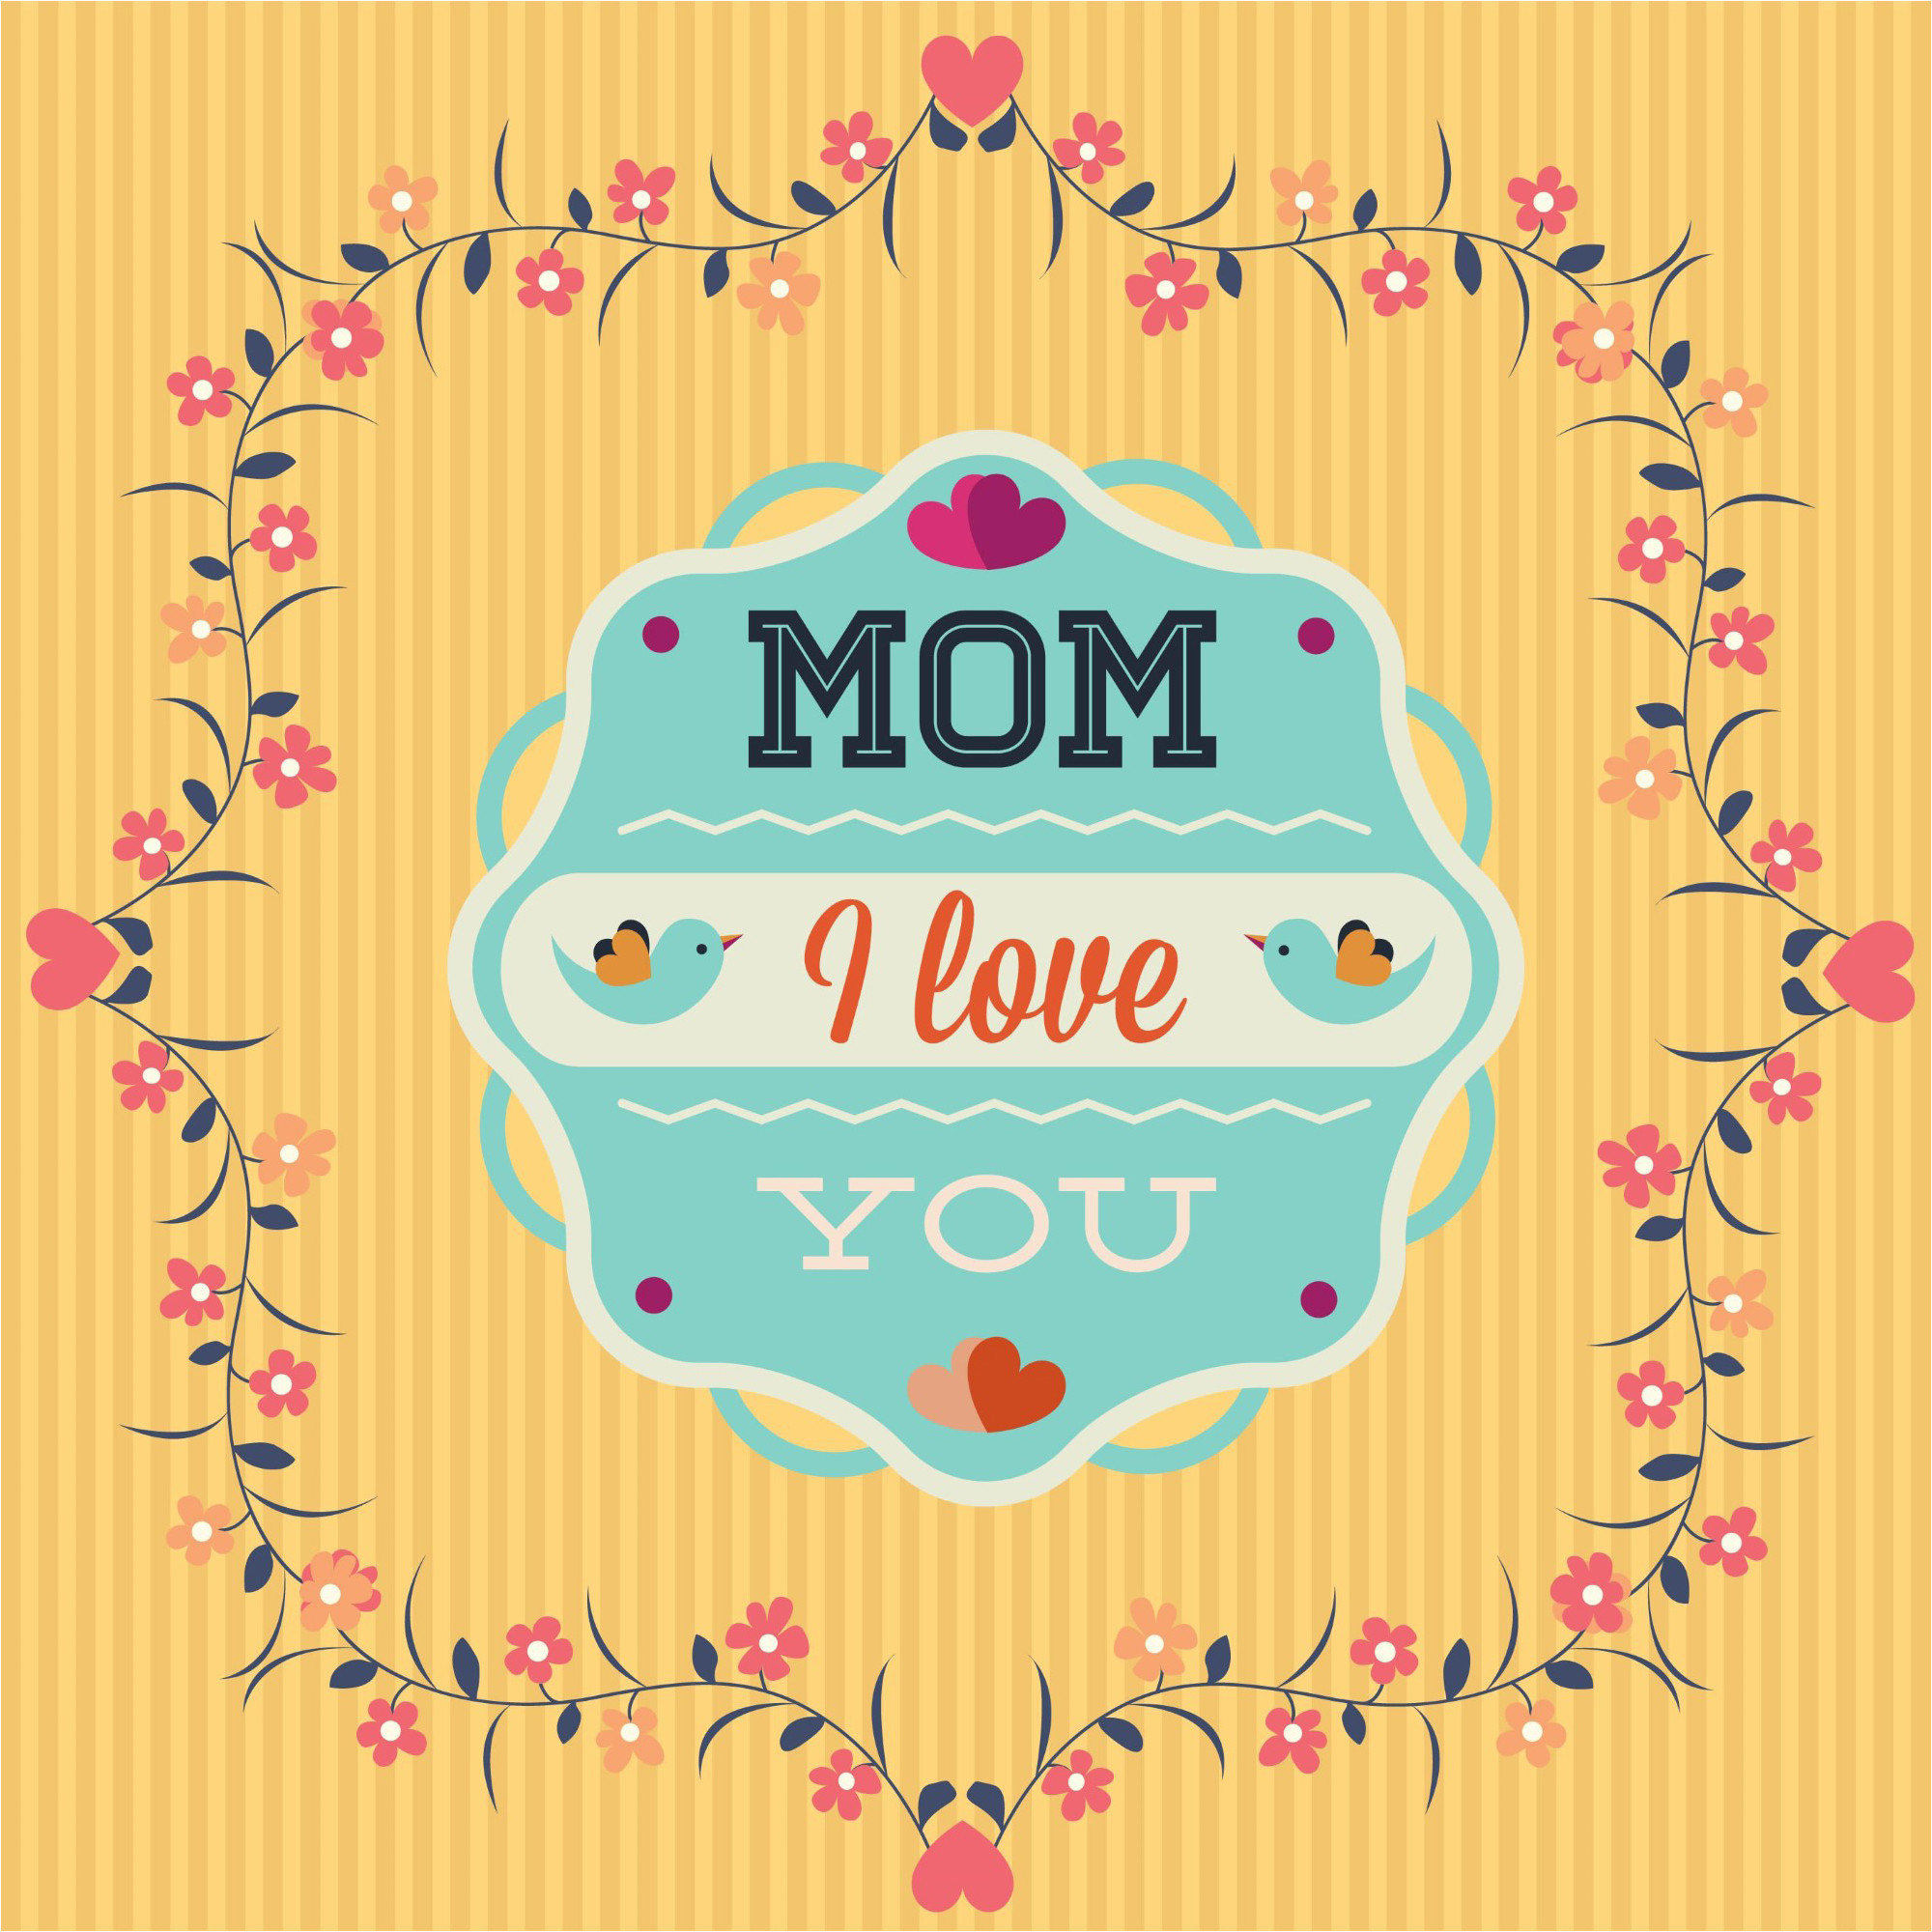 I Love You MomImages HD